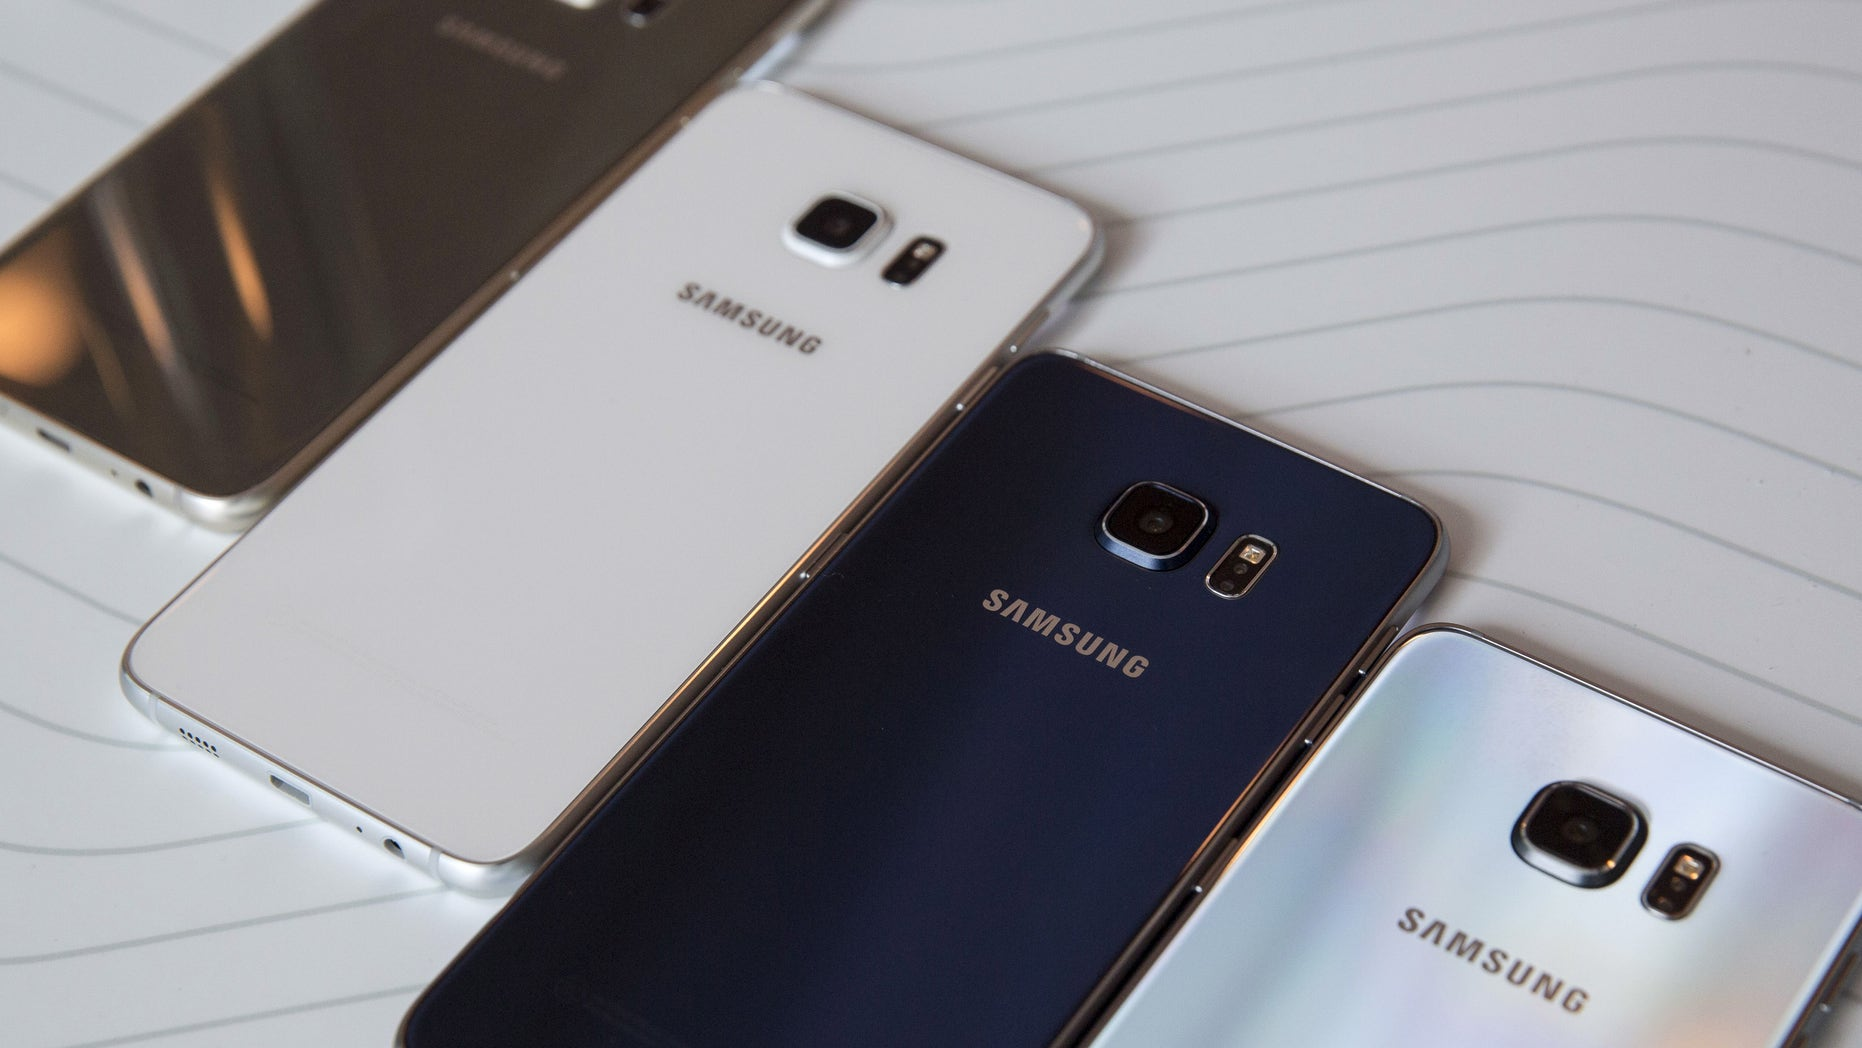 Less than a year after introducing its Samsung Galaxy S6 Edge+, the company is rumored to be releasing its next model, the Galaxy S7, in February.